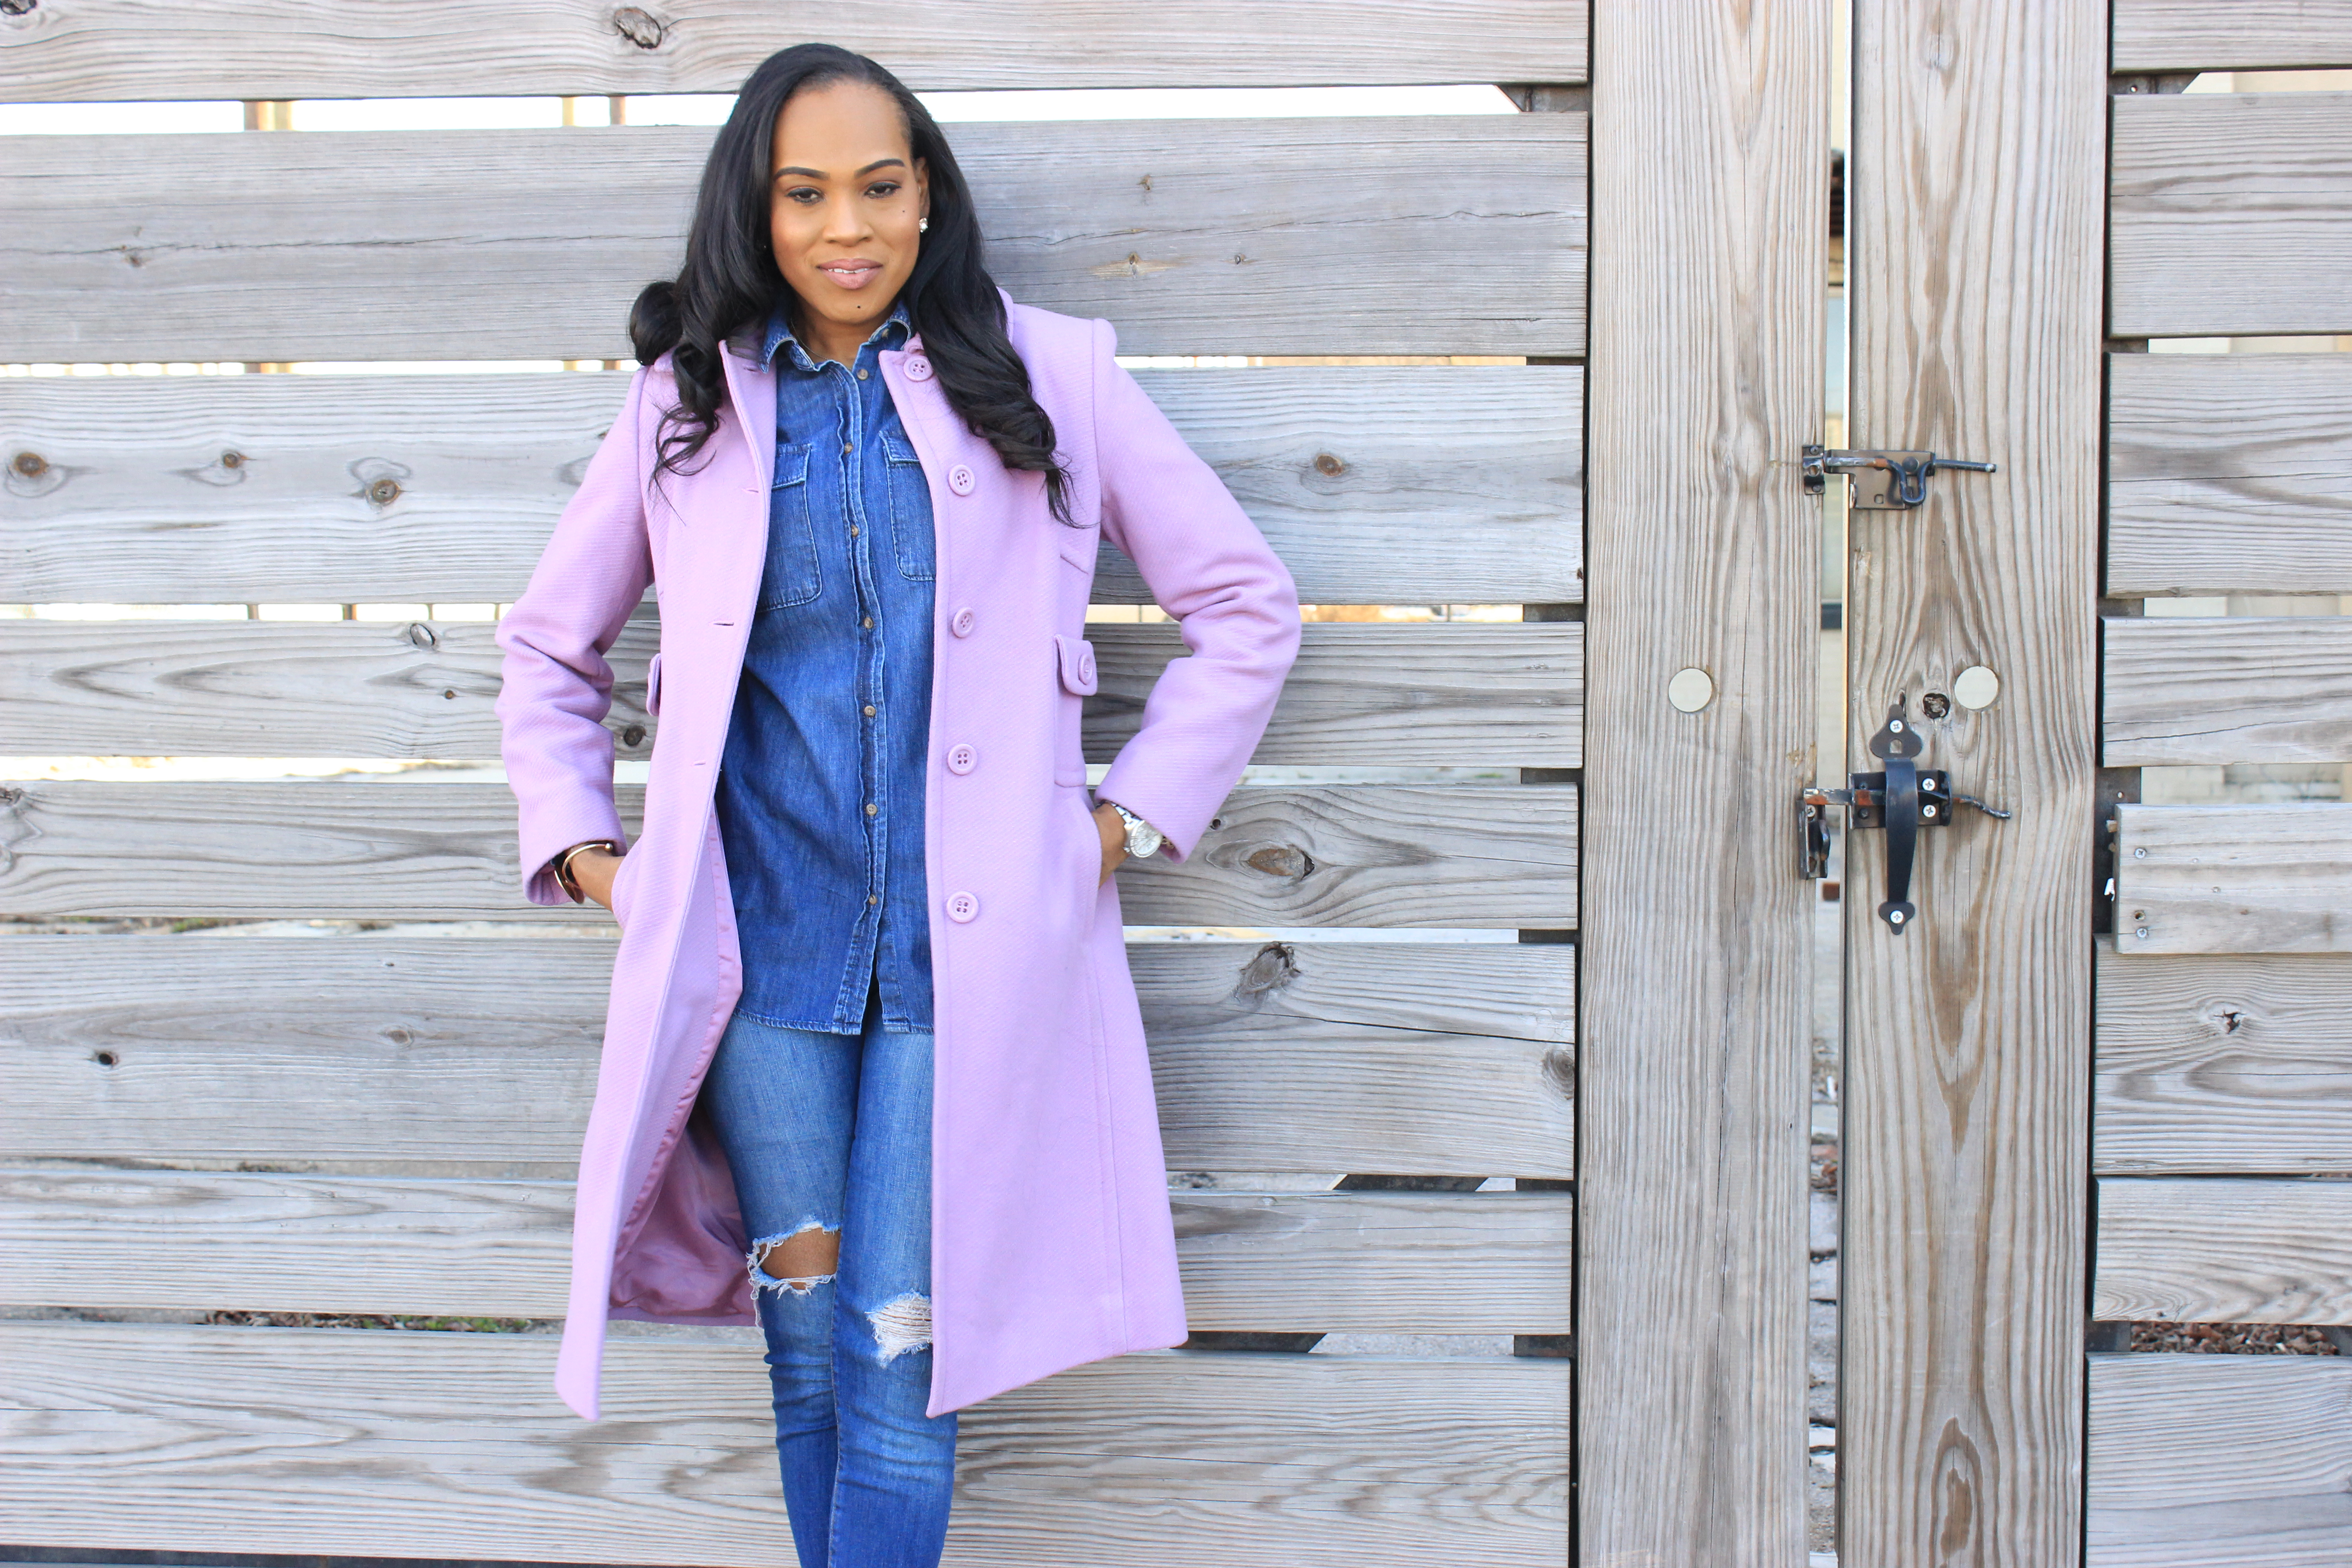 Style-Files-Merona-Denim-Button-front-shirt-distressed-denim- jeans- Lavender-Ninewest-wool-coat-silver-metallic-asos-picture-perfect-pointed-toe-heels-how-to-wear-denim-on-denim-oohlalablog-7